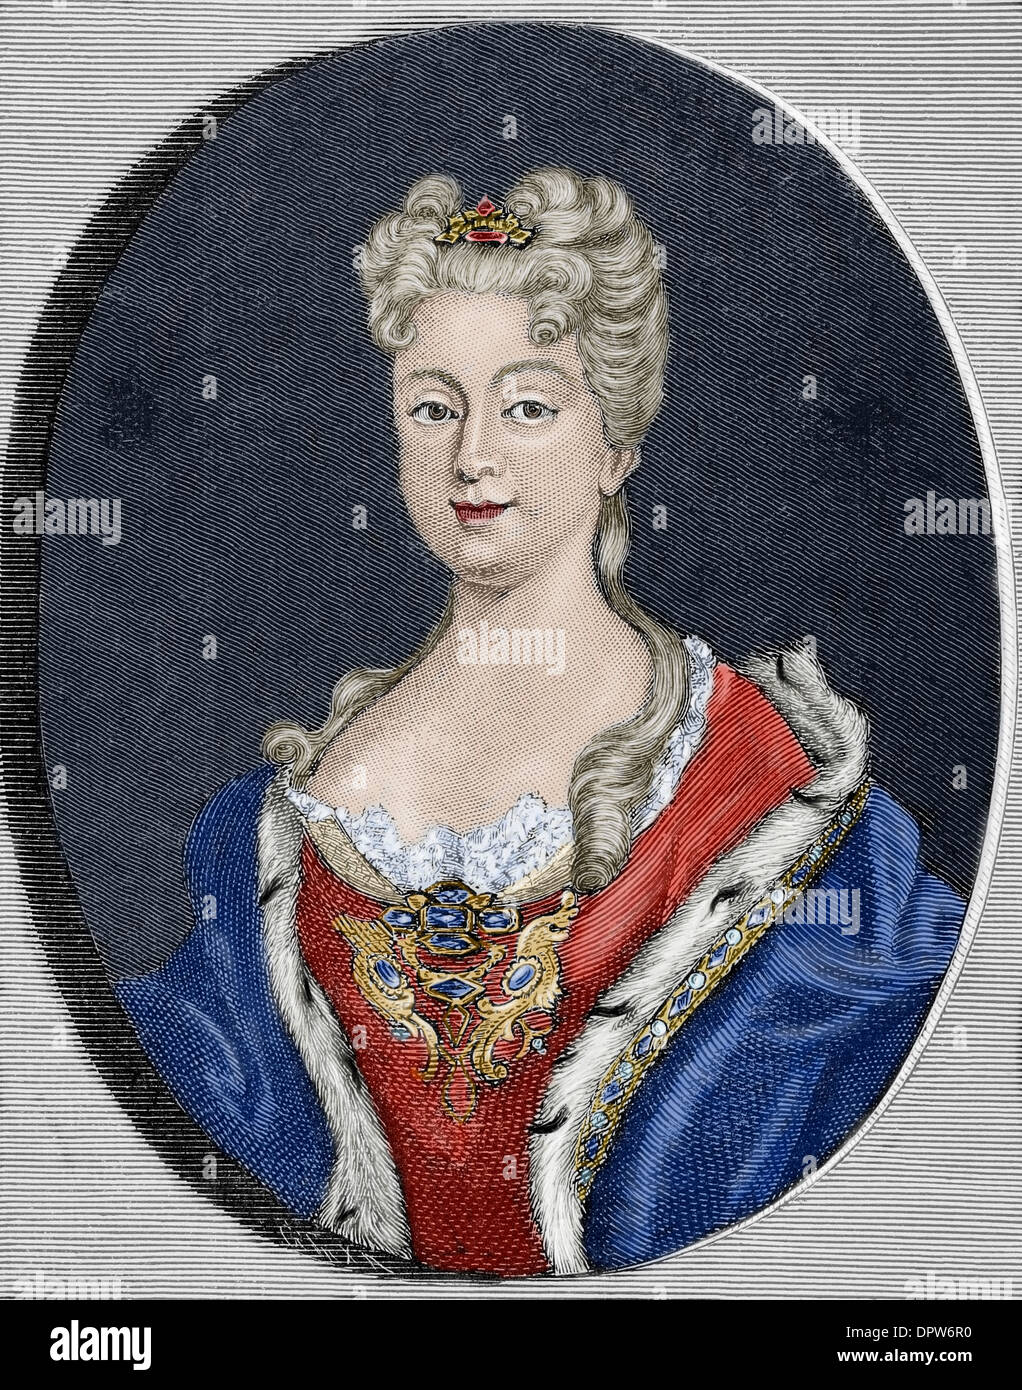 Elisabeth Farnese (1692-1766). Queen consort of Spain, wife of Philip V. Colored engraving. - Stock Image